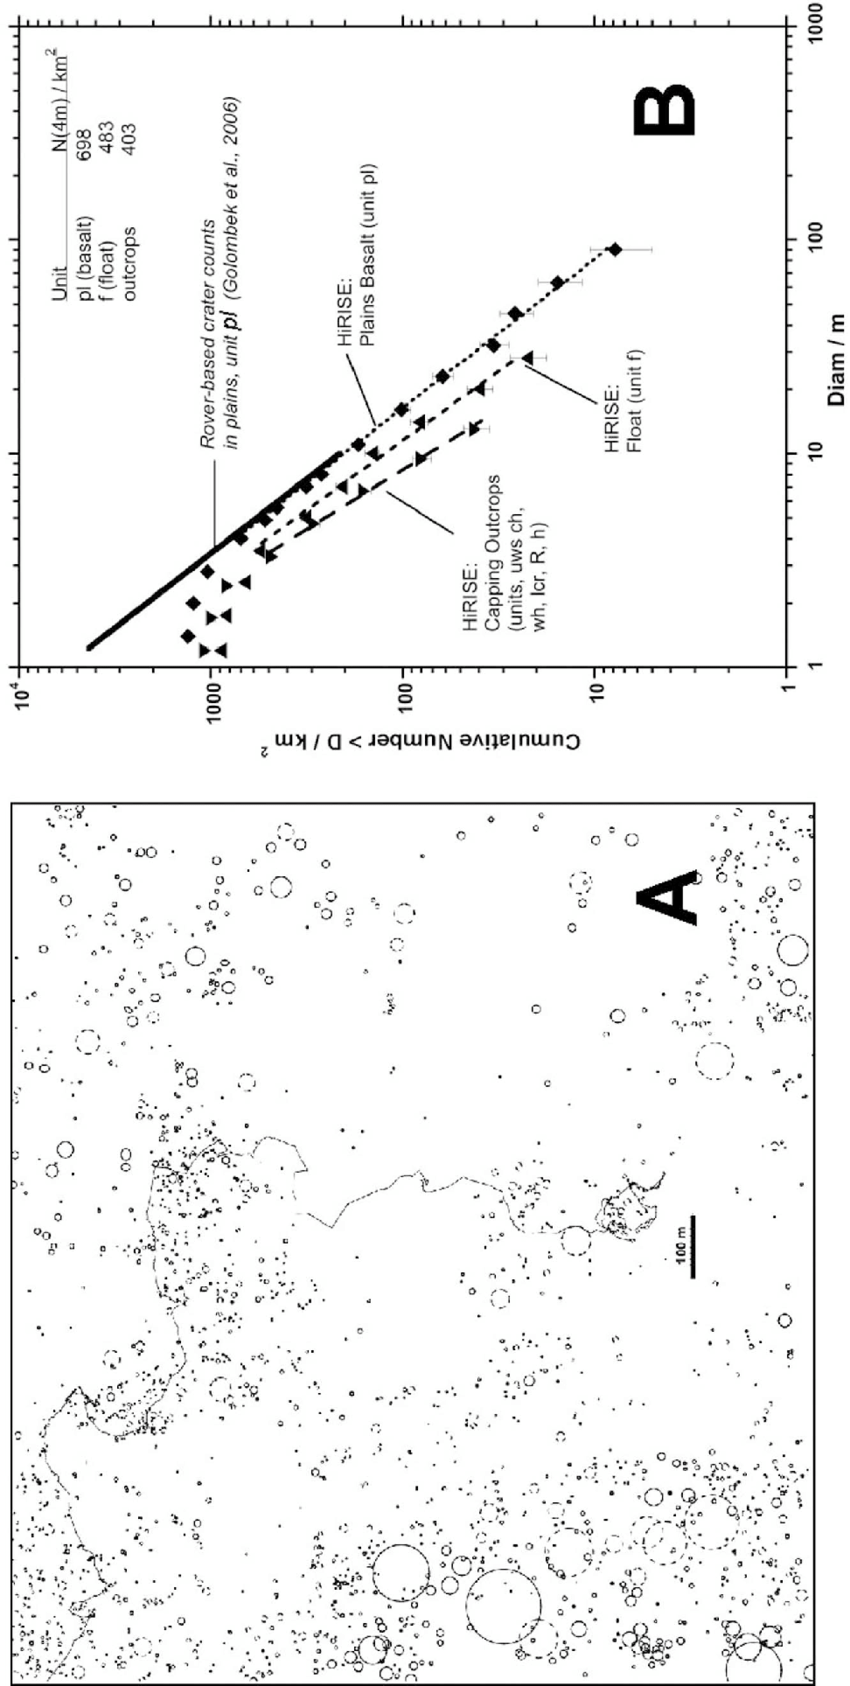 medium resolution of  a map of all identifiable impact craters in hirise images covering download scientific diagram